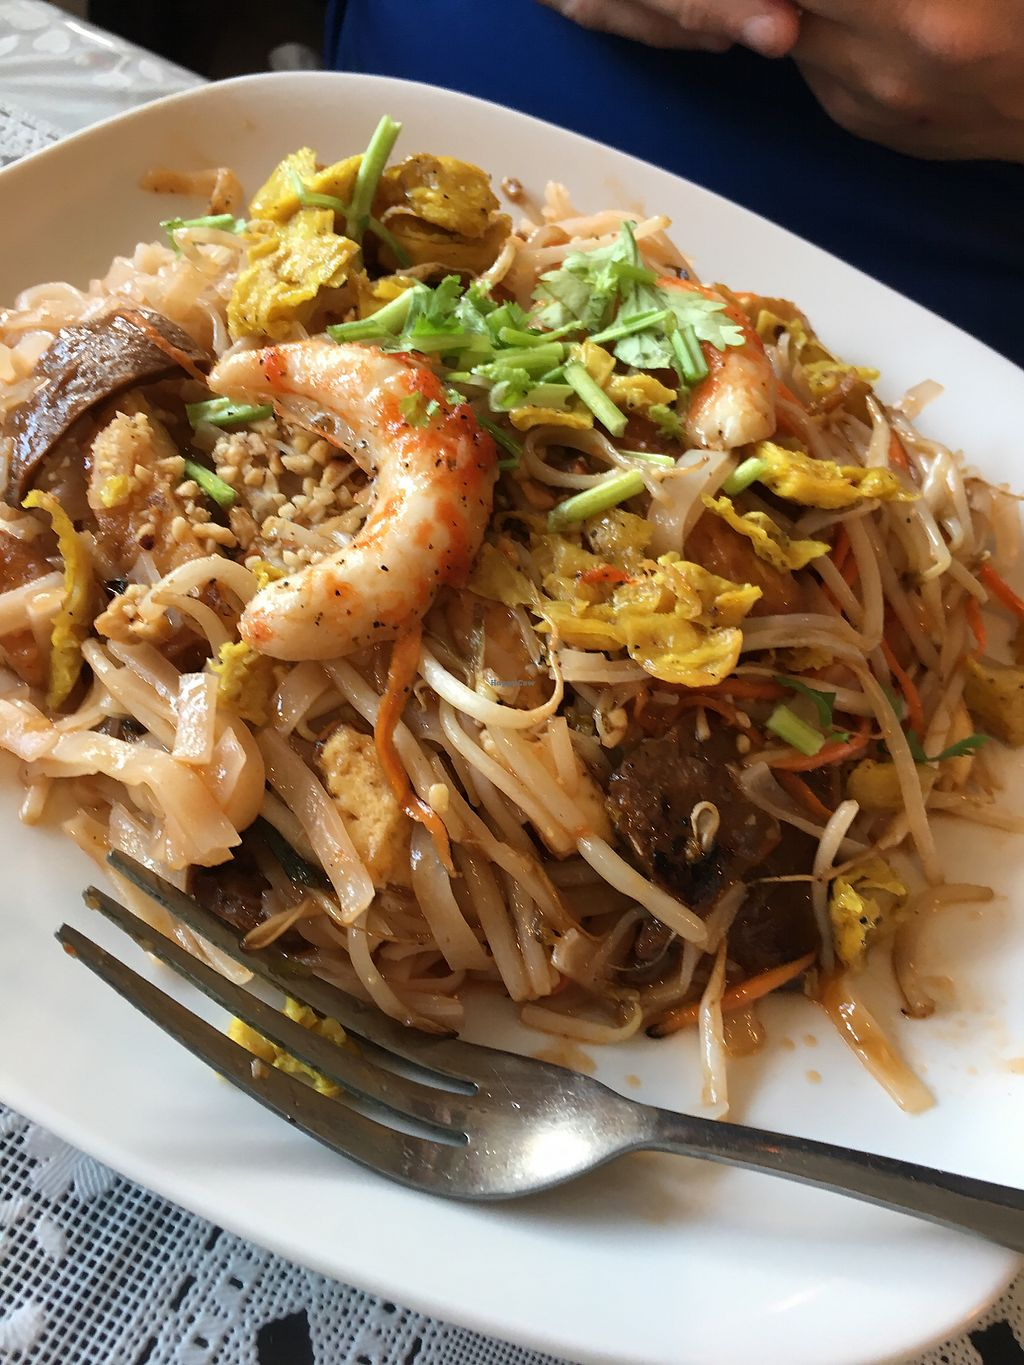 """Photo of Loving Vegan Market & Cuisine  by <a href=""""/members/profile/RoseM"""">RoseM</a> <br/>pad thai  <br/> September 8, 2017  - <a href='/contact/abuse/image/67993/301922'>Report</a>"""